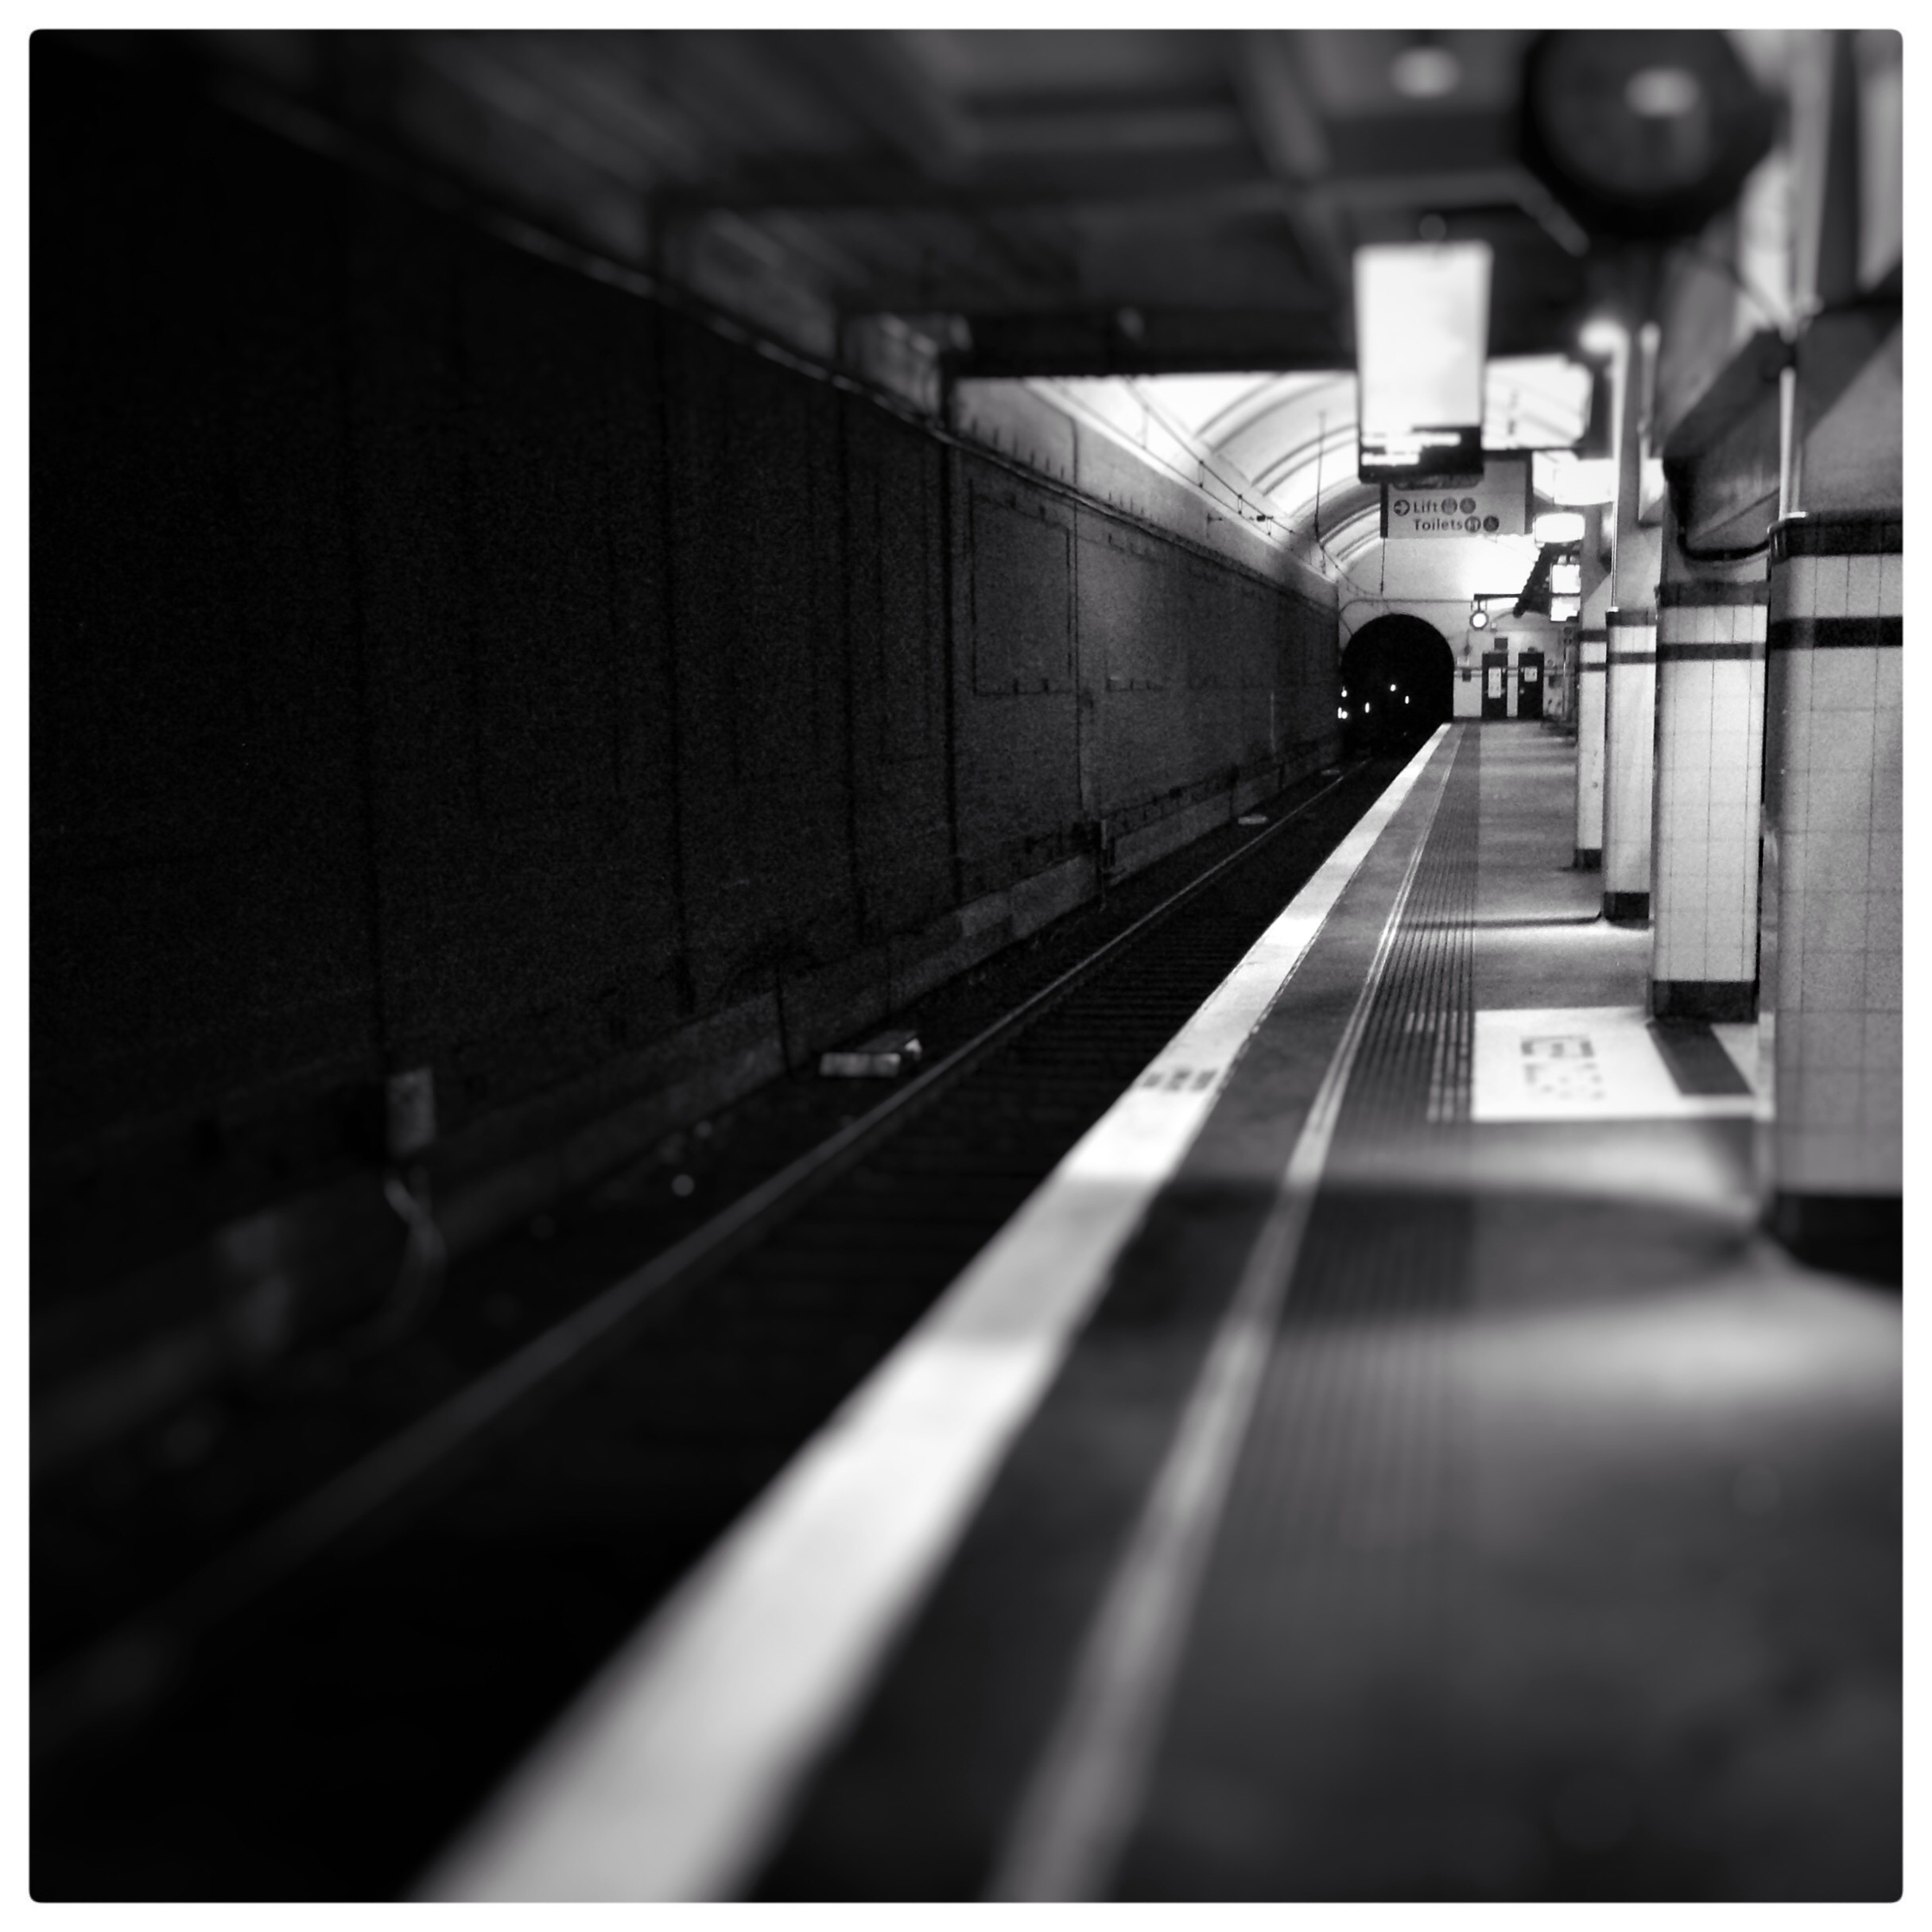 Day 1571. End of the Line